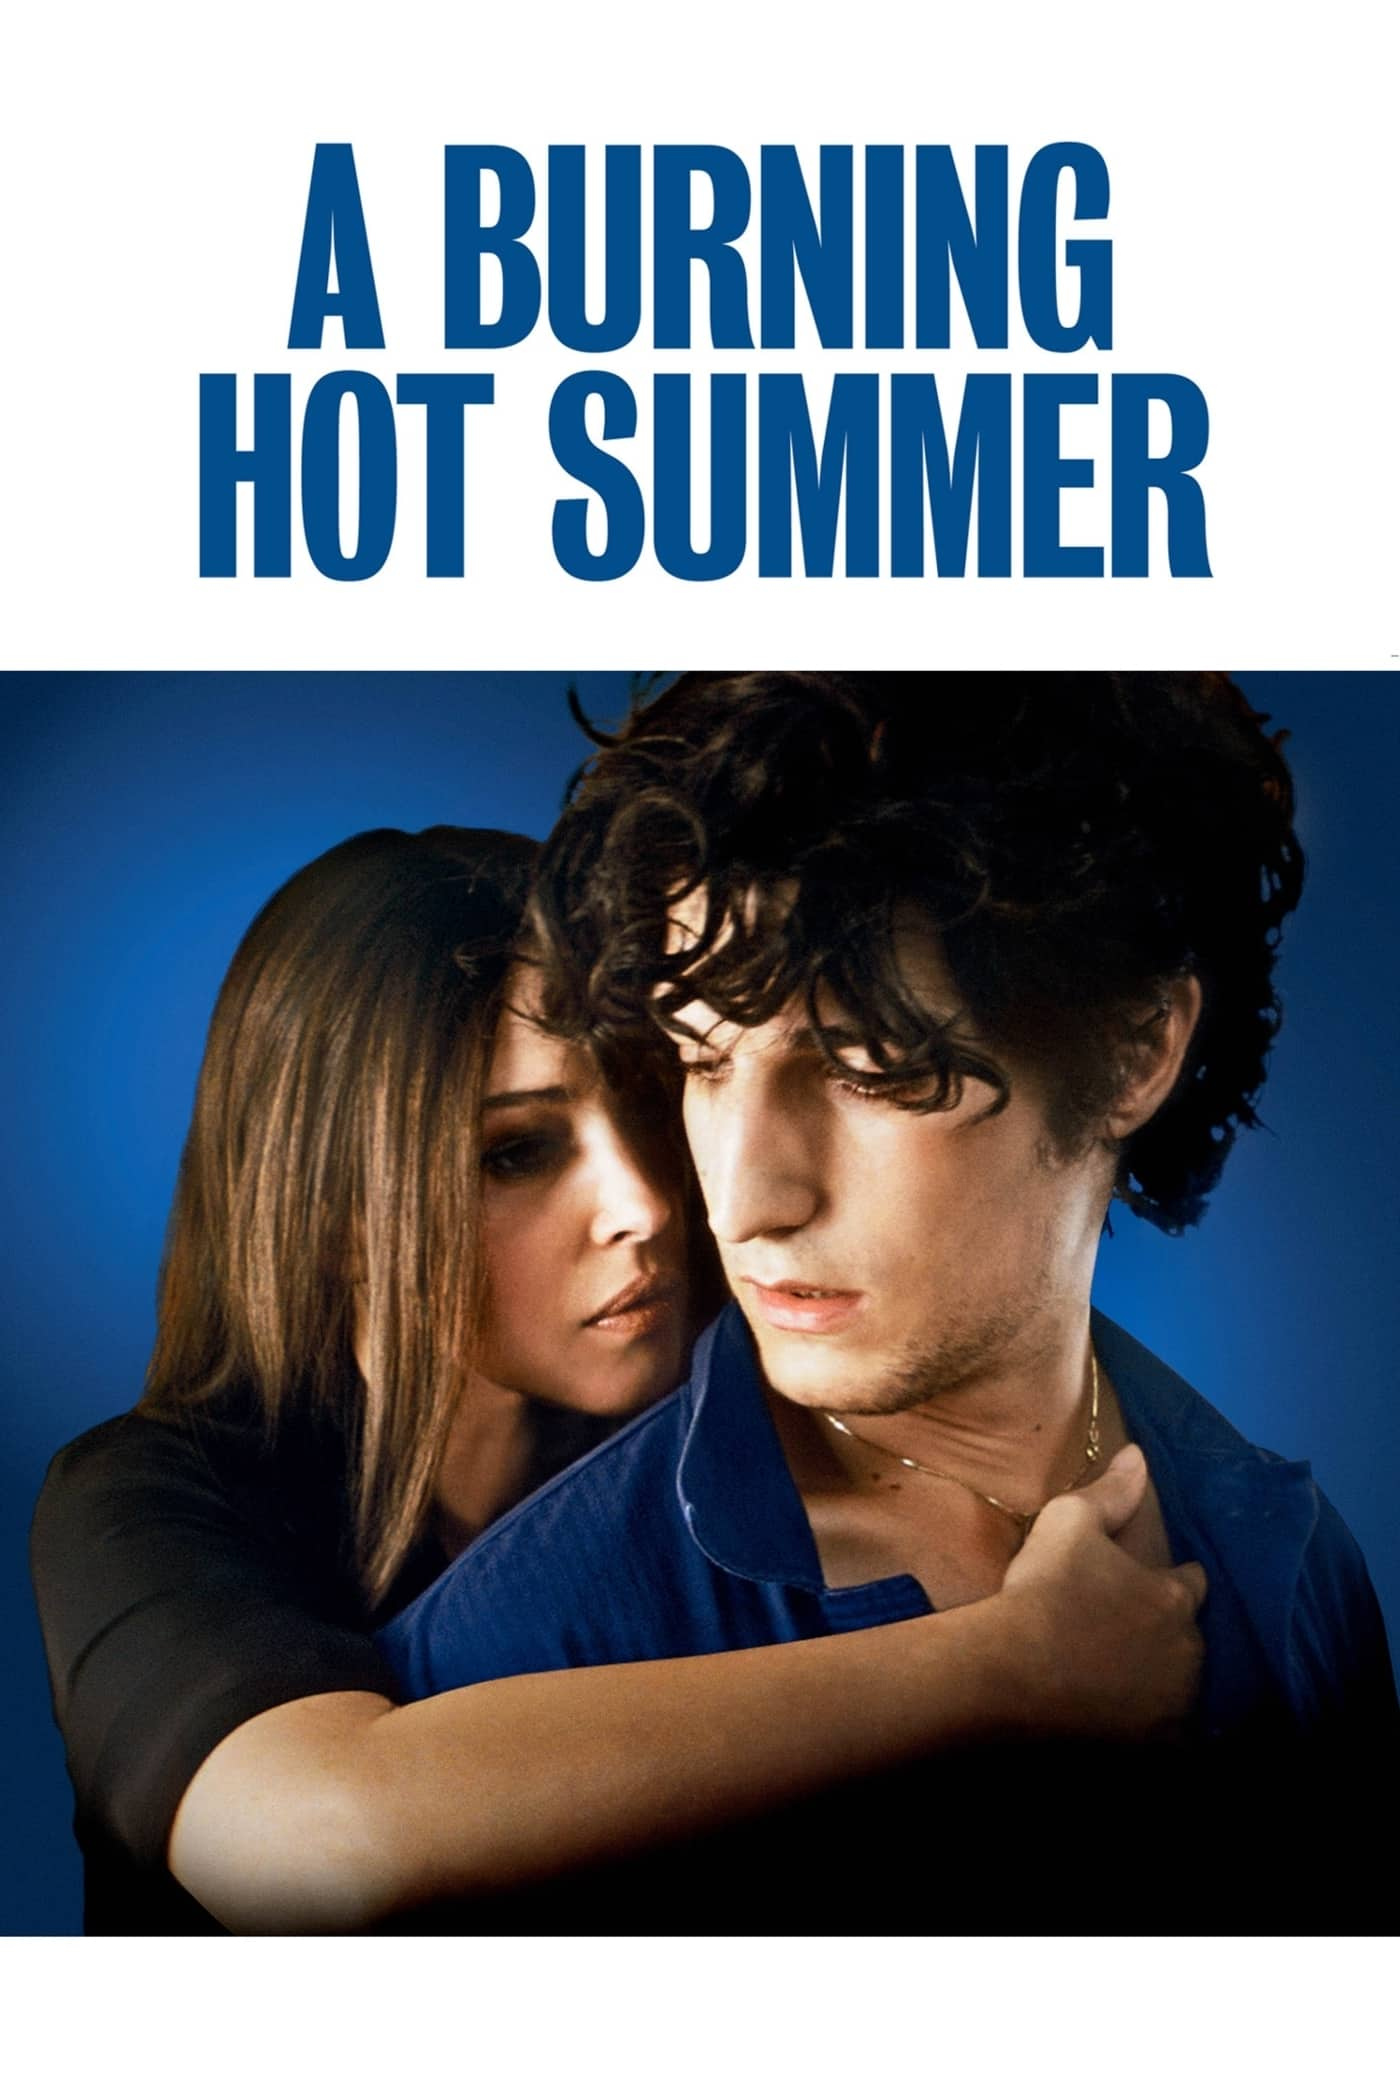 A Burning Hot Summer, 2011